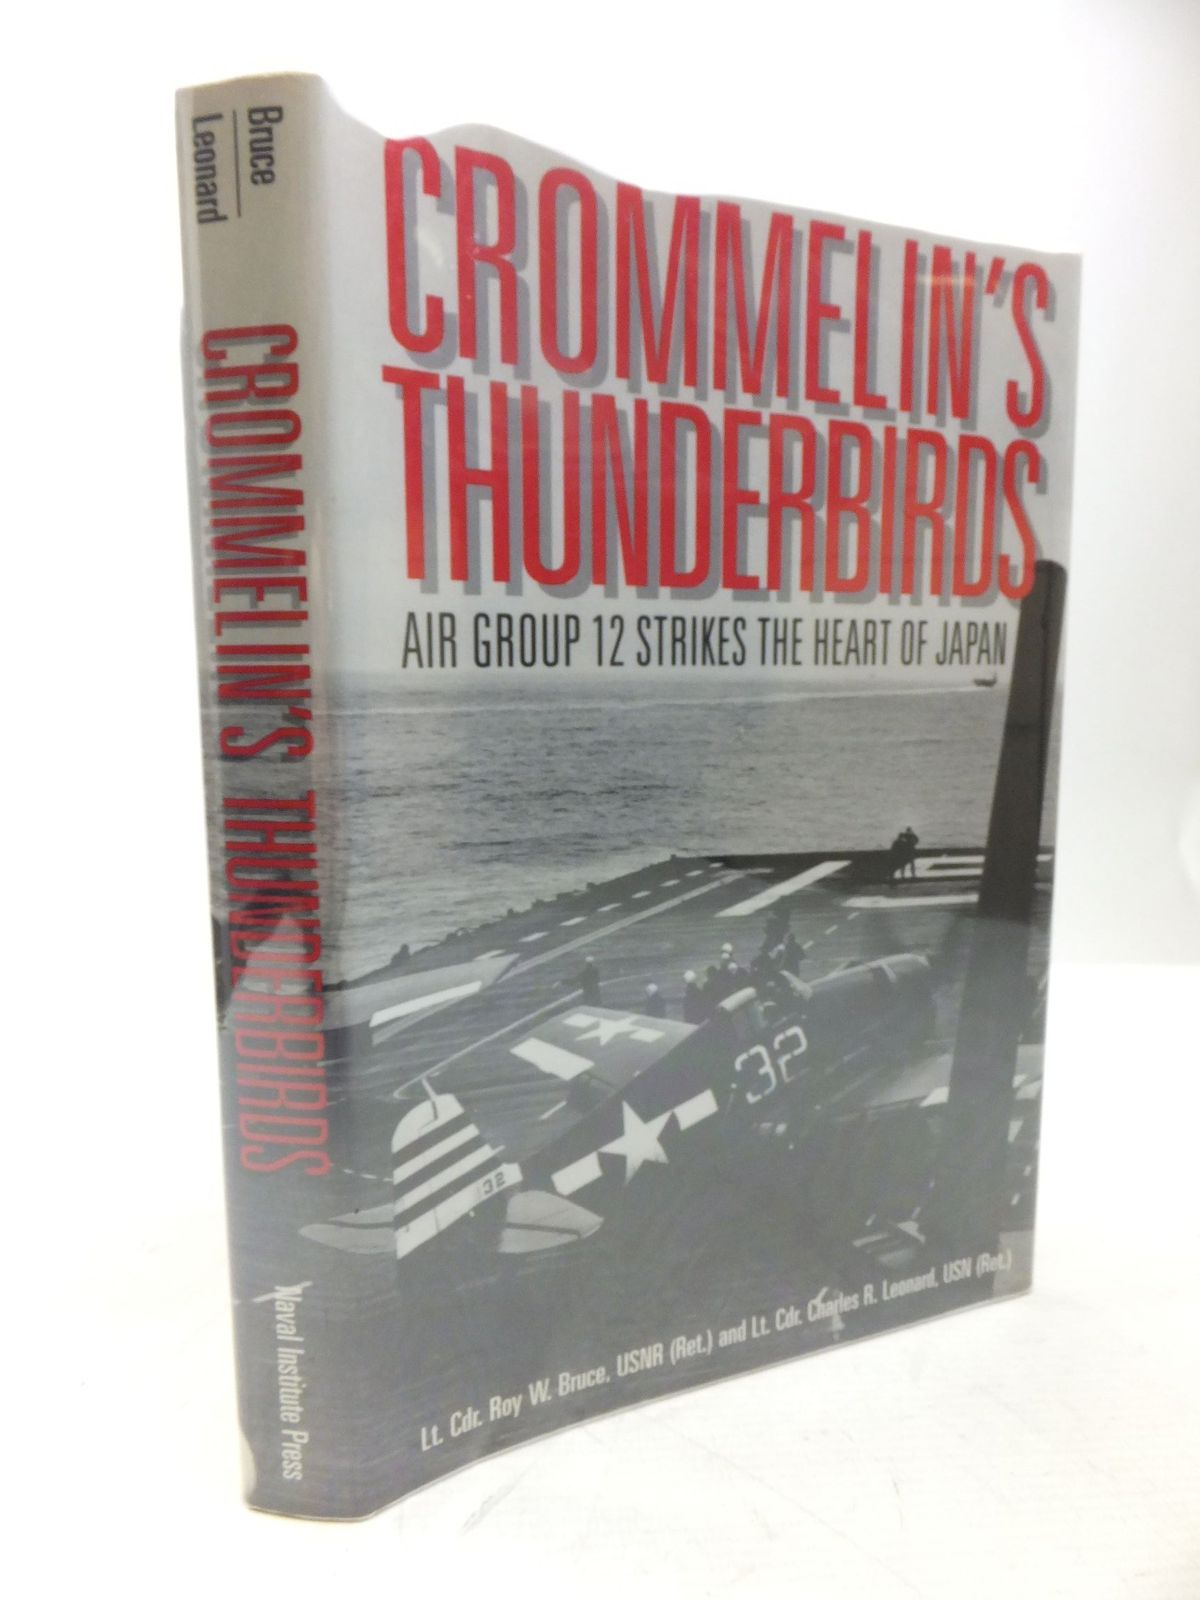 Photo of CROMMELIN'S THUNDERBIRDS AIR GROUP 12 STRIKES THE HEART OF JAPAN written by Bruce, Roy W. Leonard, Charles R. illustrated by Bruce, Roy W. published by Naval Institute Press (STOCK CODE: 2118443)  for sale by Stella & Rose's Books